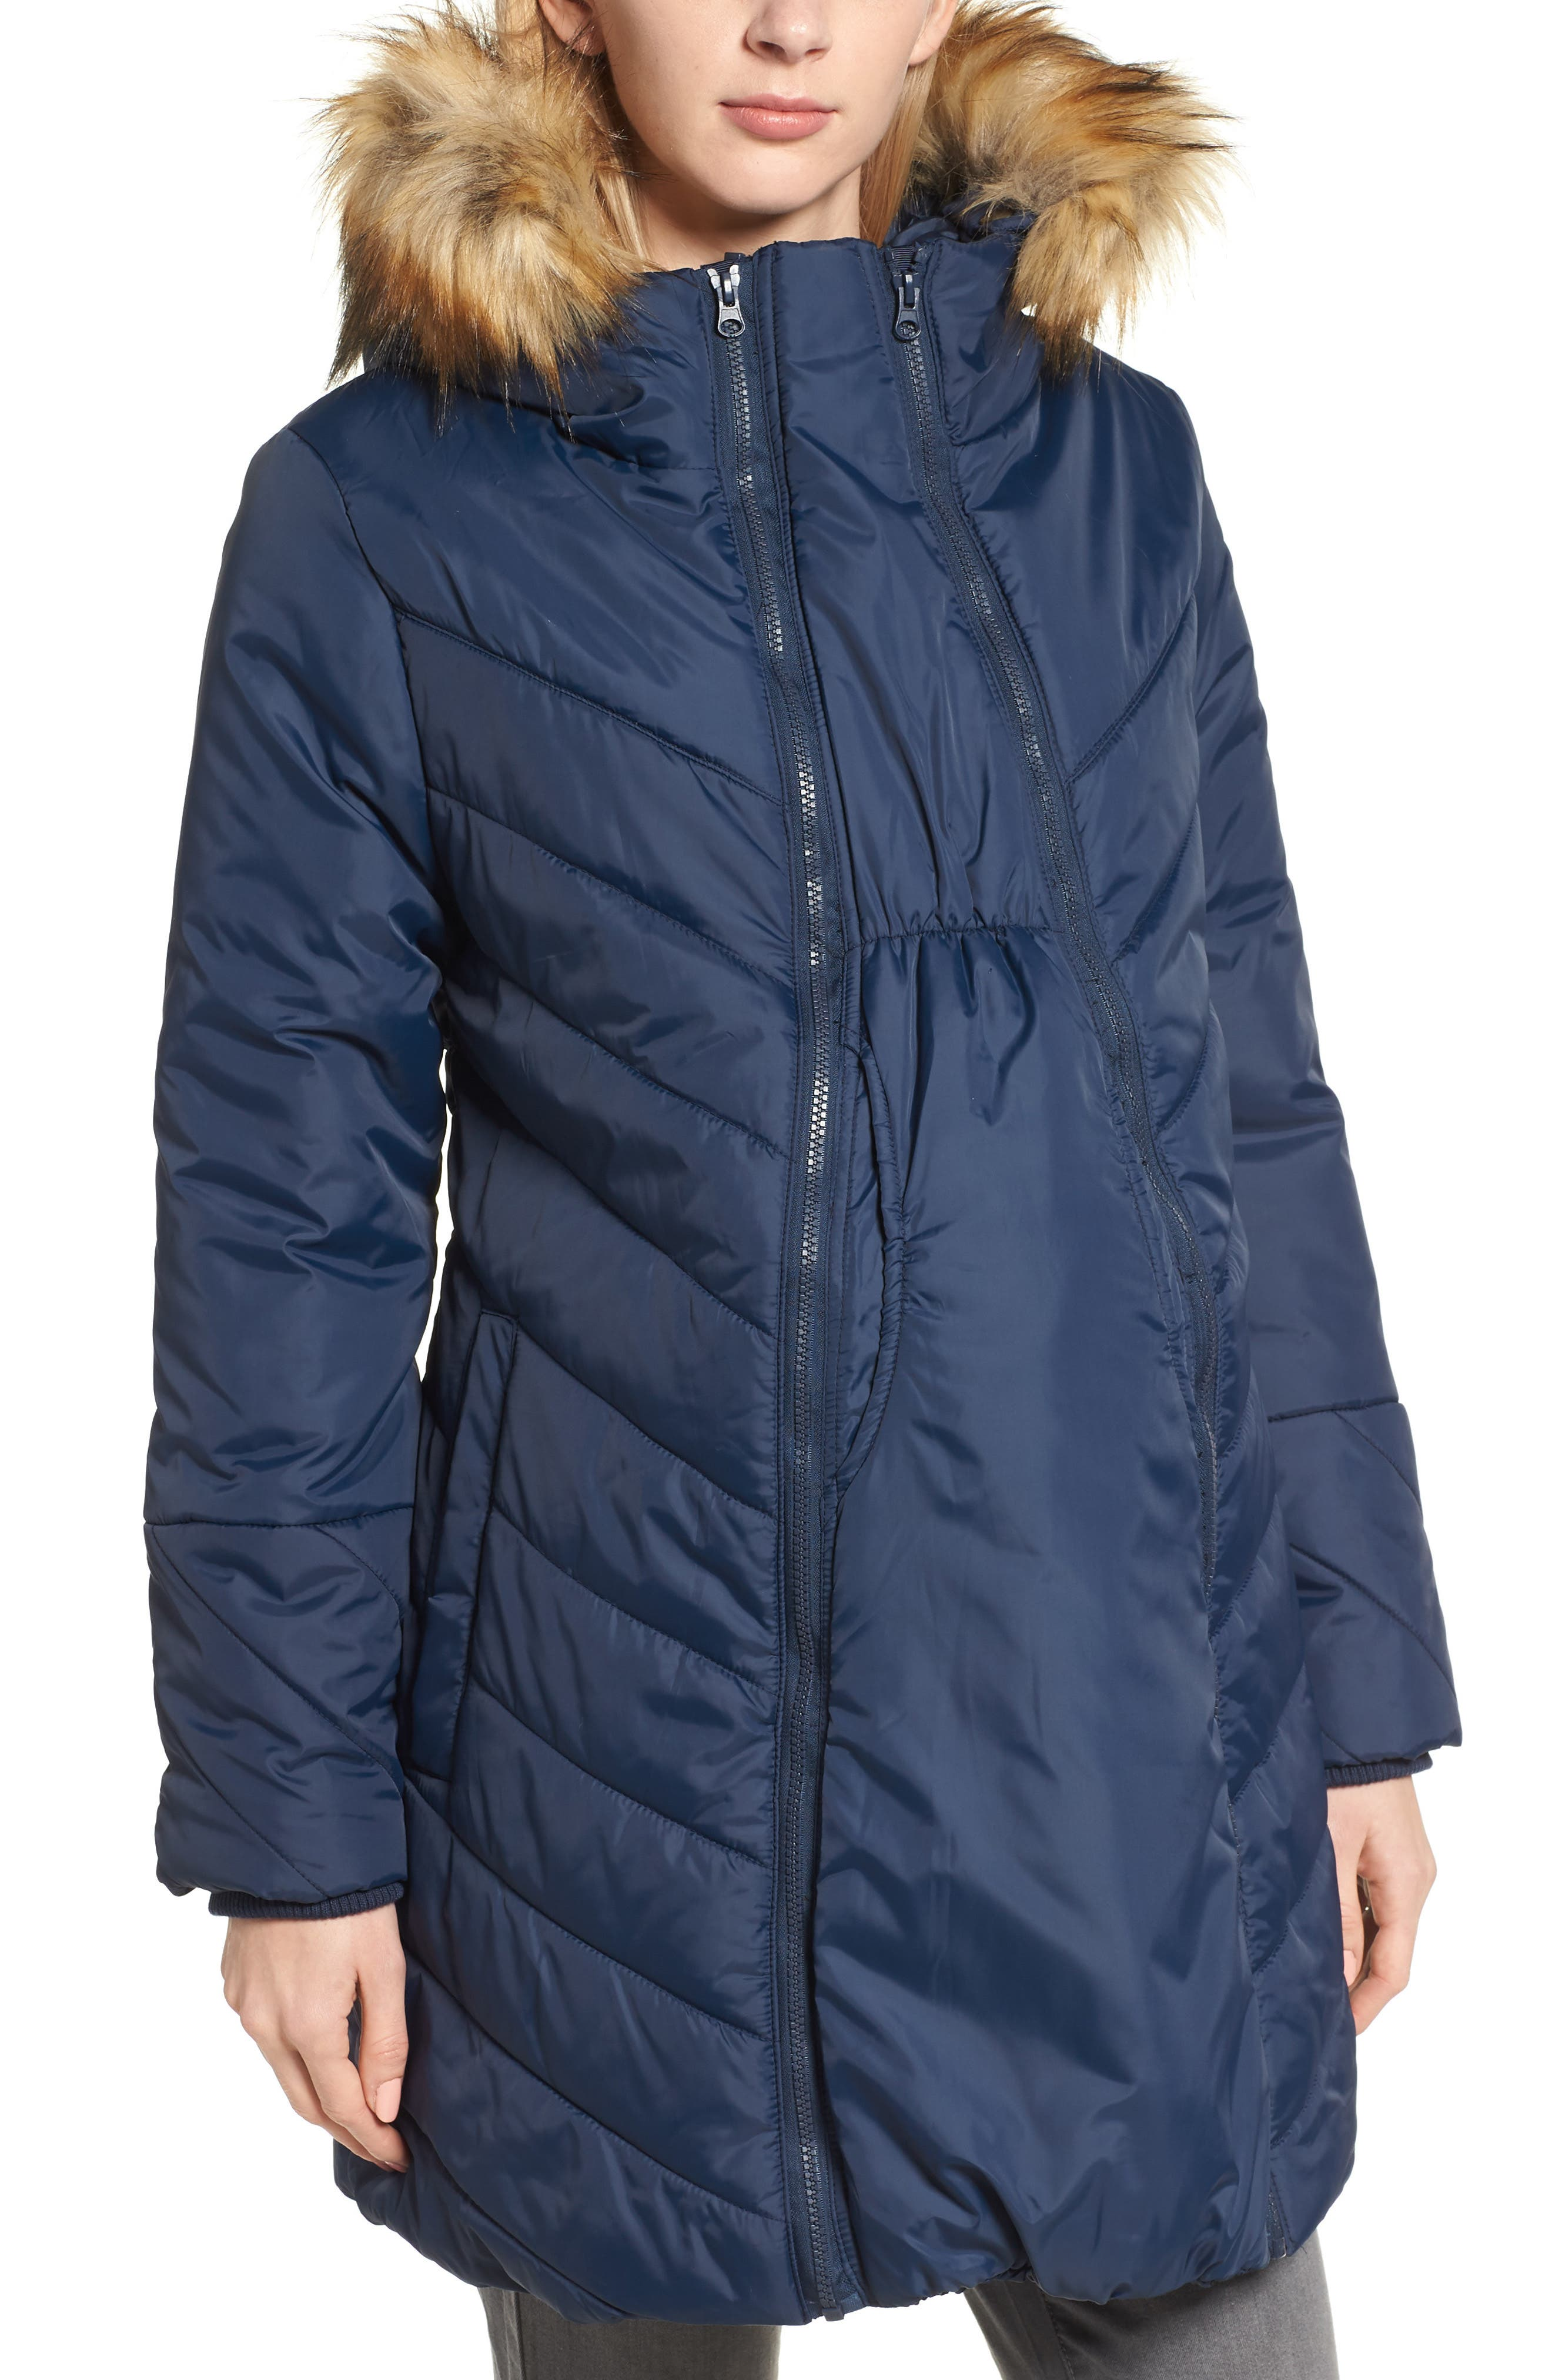 Faux Fur Trim Convertible Puffer 3-in-1 Maternity Jacket,                             Main thumbnail 1, color,                             Navy